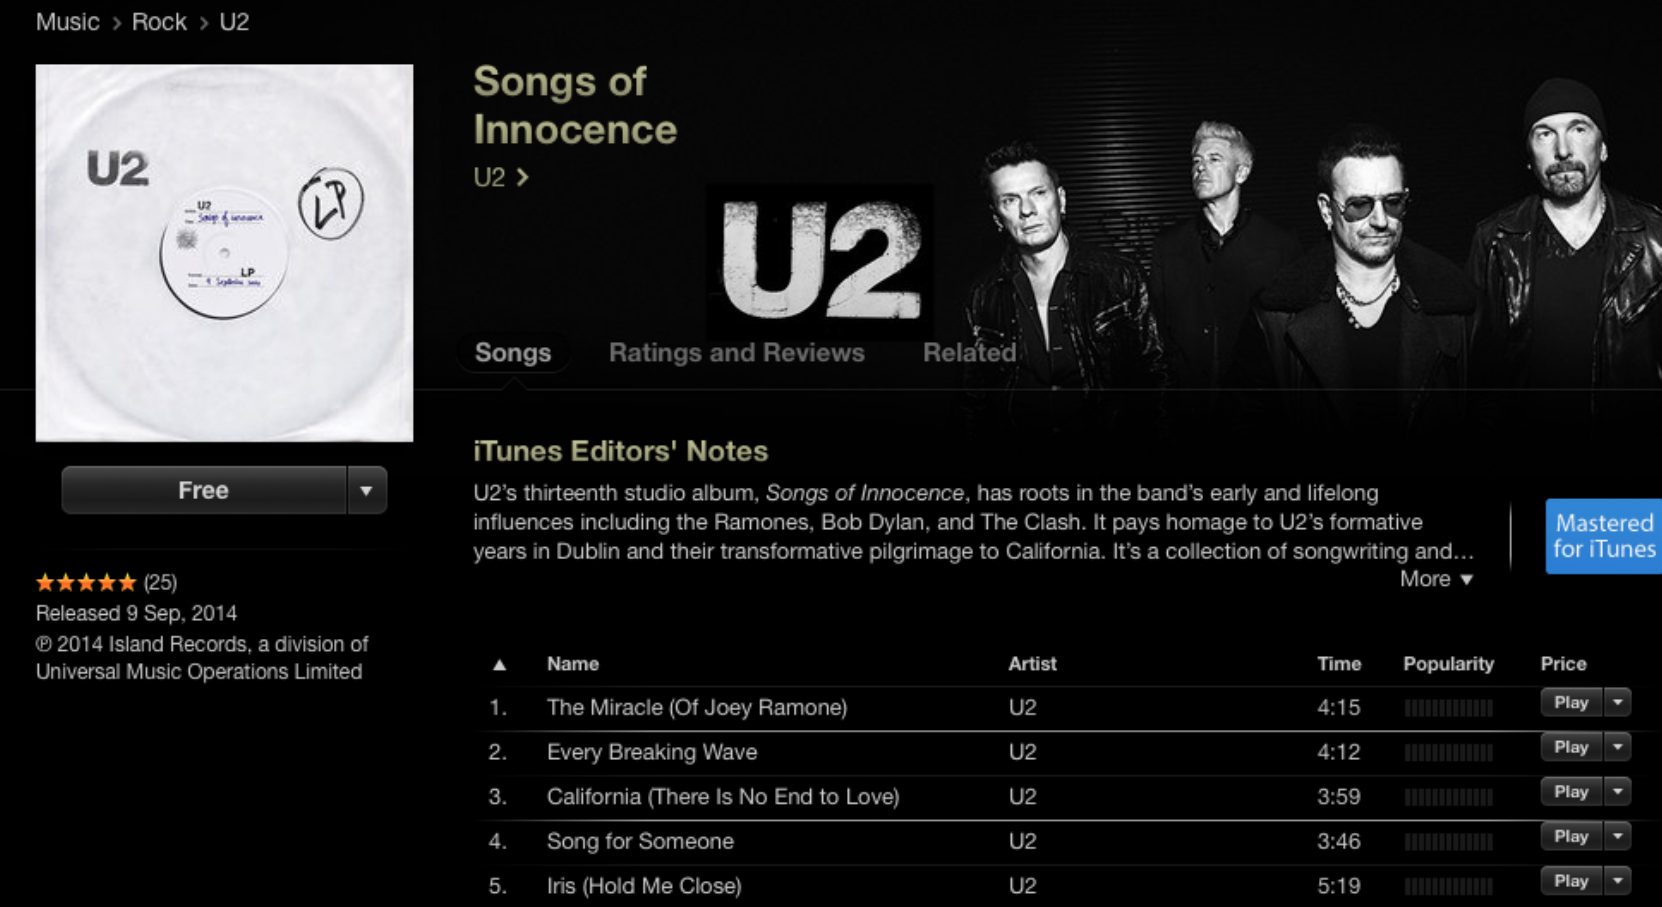 The automatically downloaded U2 album that no one asked for